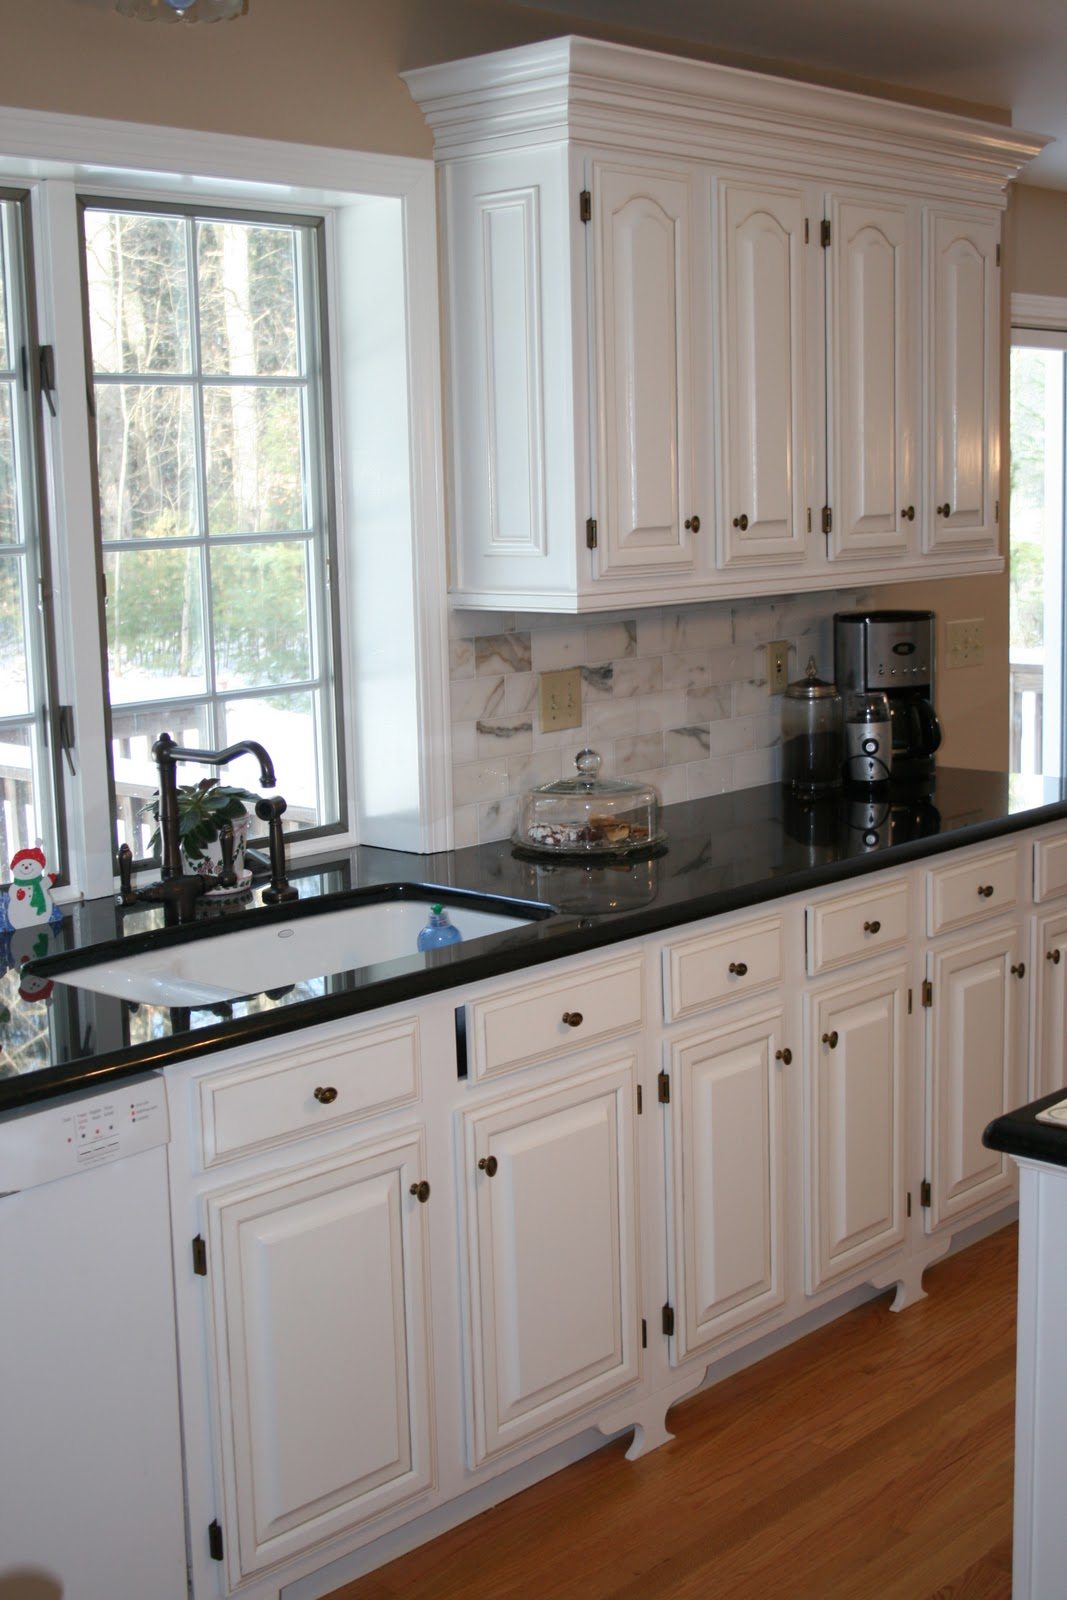 White Kitchen Cabinets Dark Countertops – Quicua.com